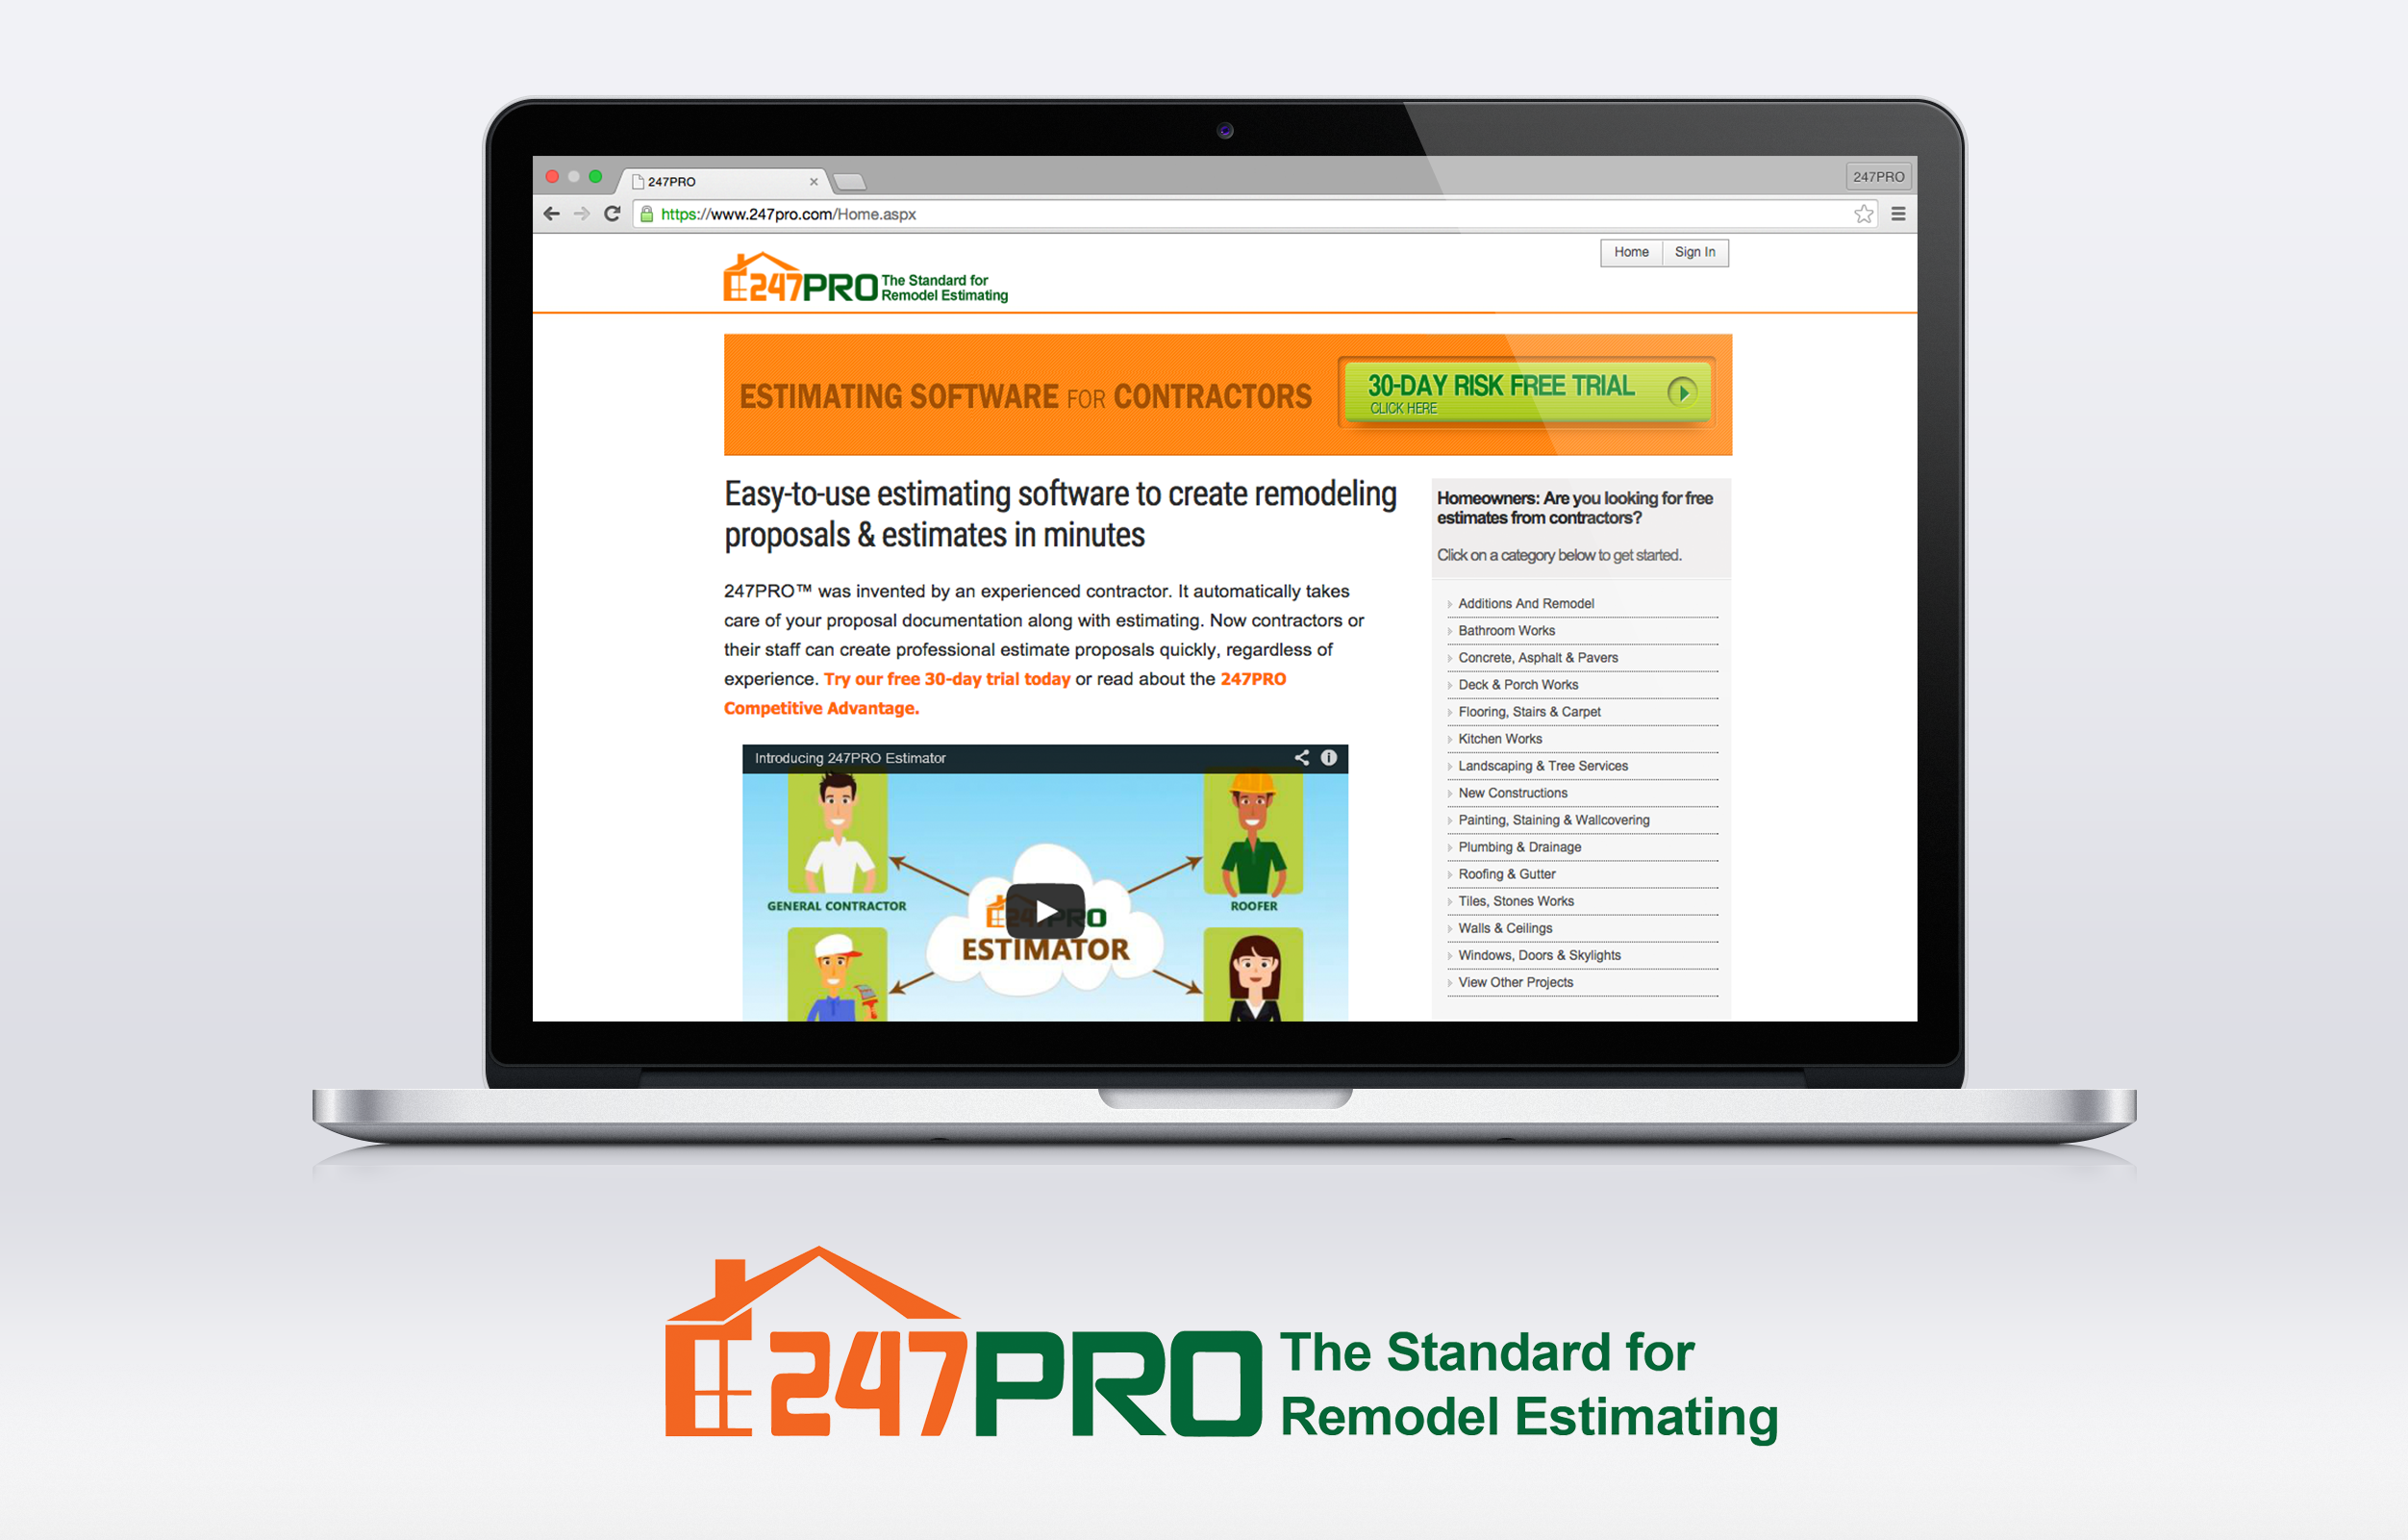 247PRO for Remodel Estimating